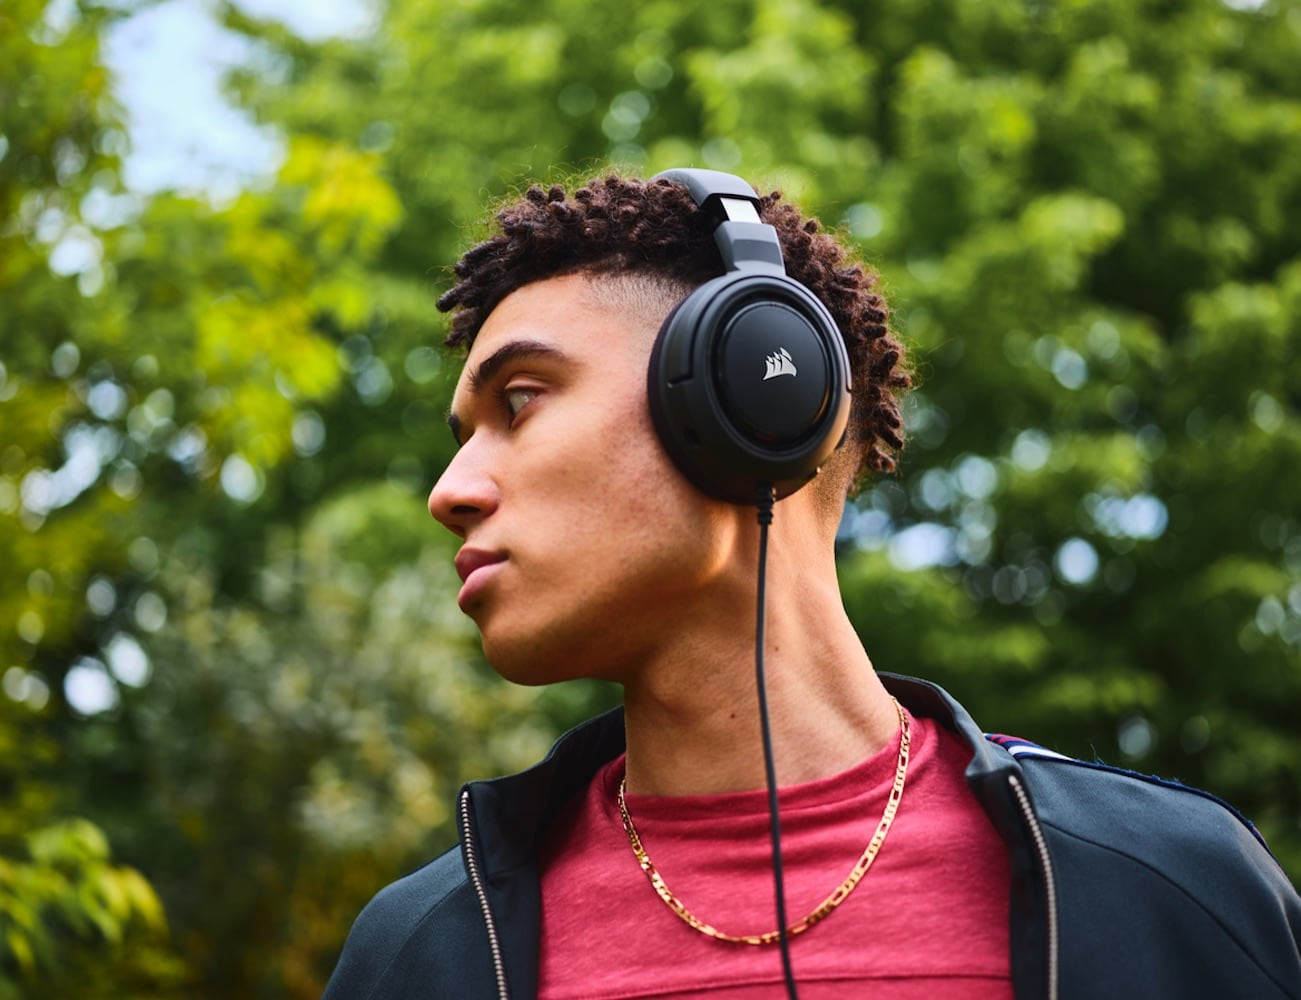 Corsair HS35 Stereo Gaming Headset is designed for your favorite gaming systems